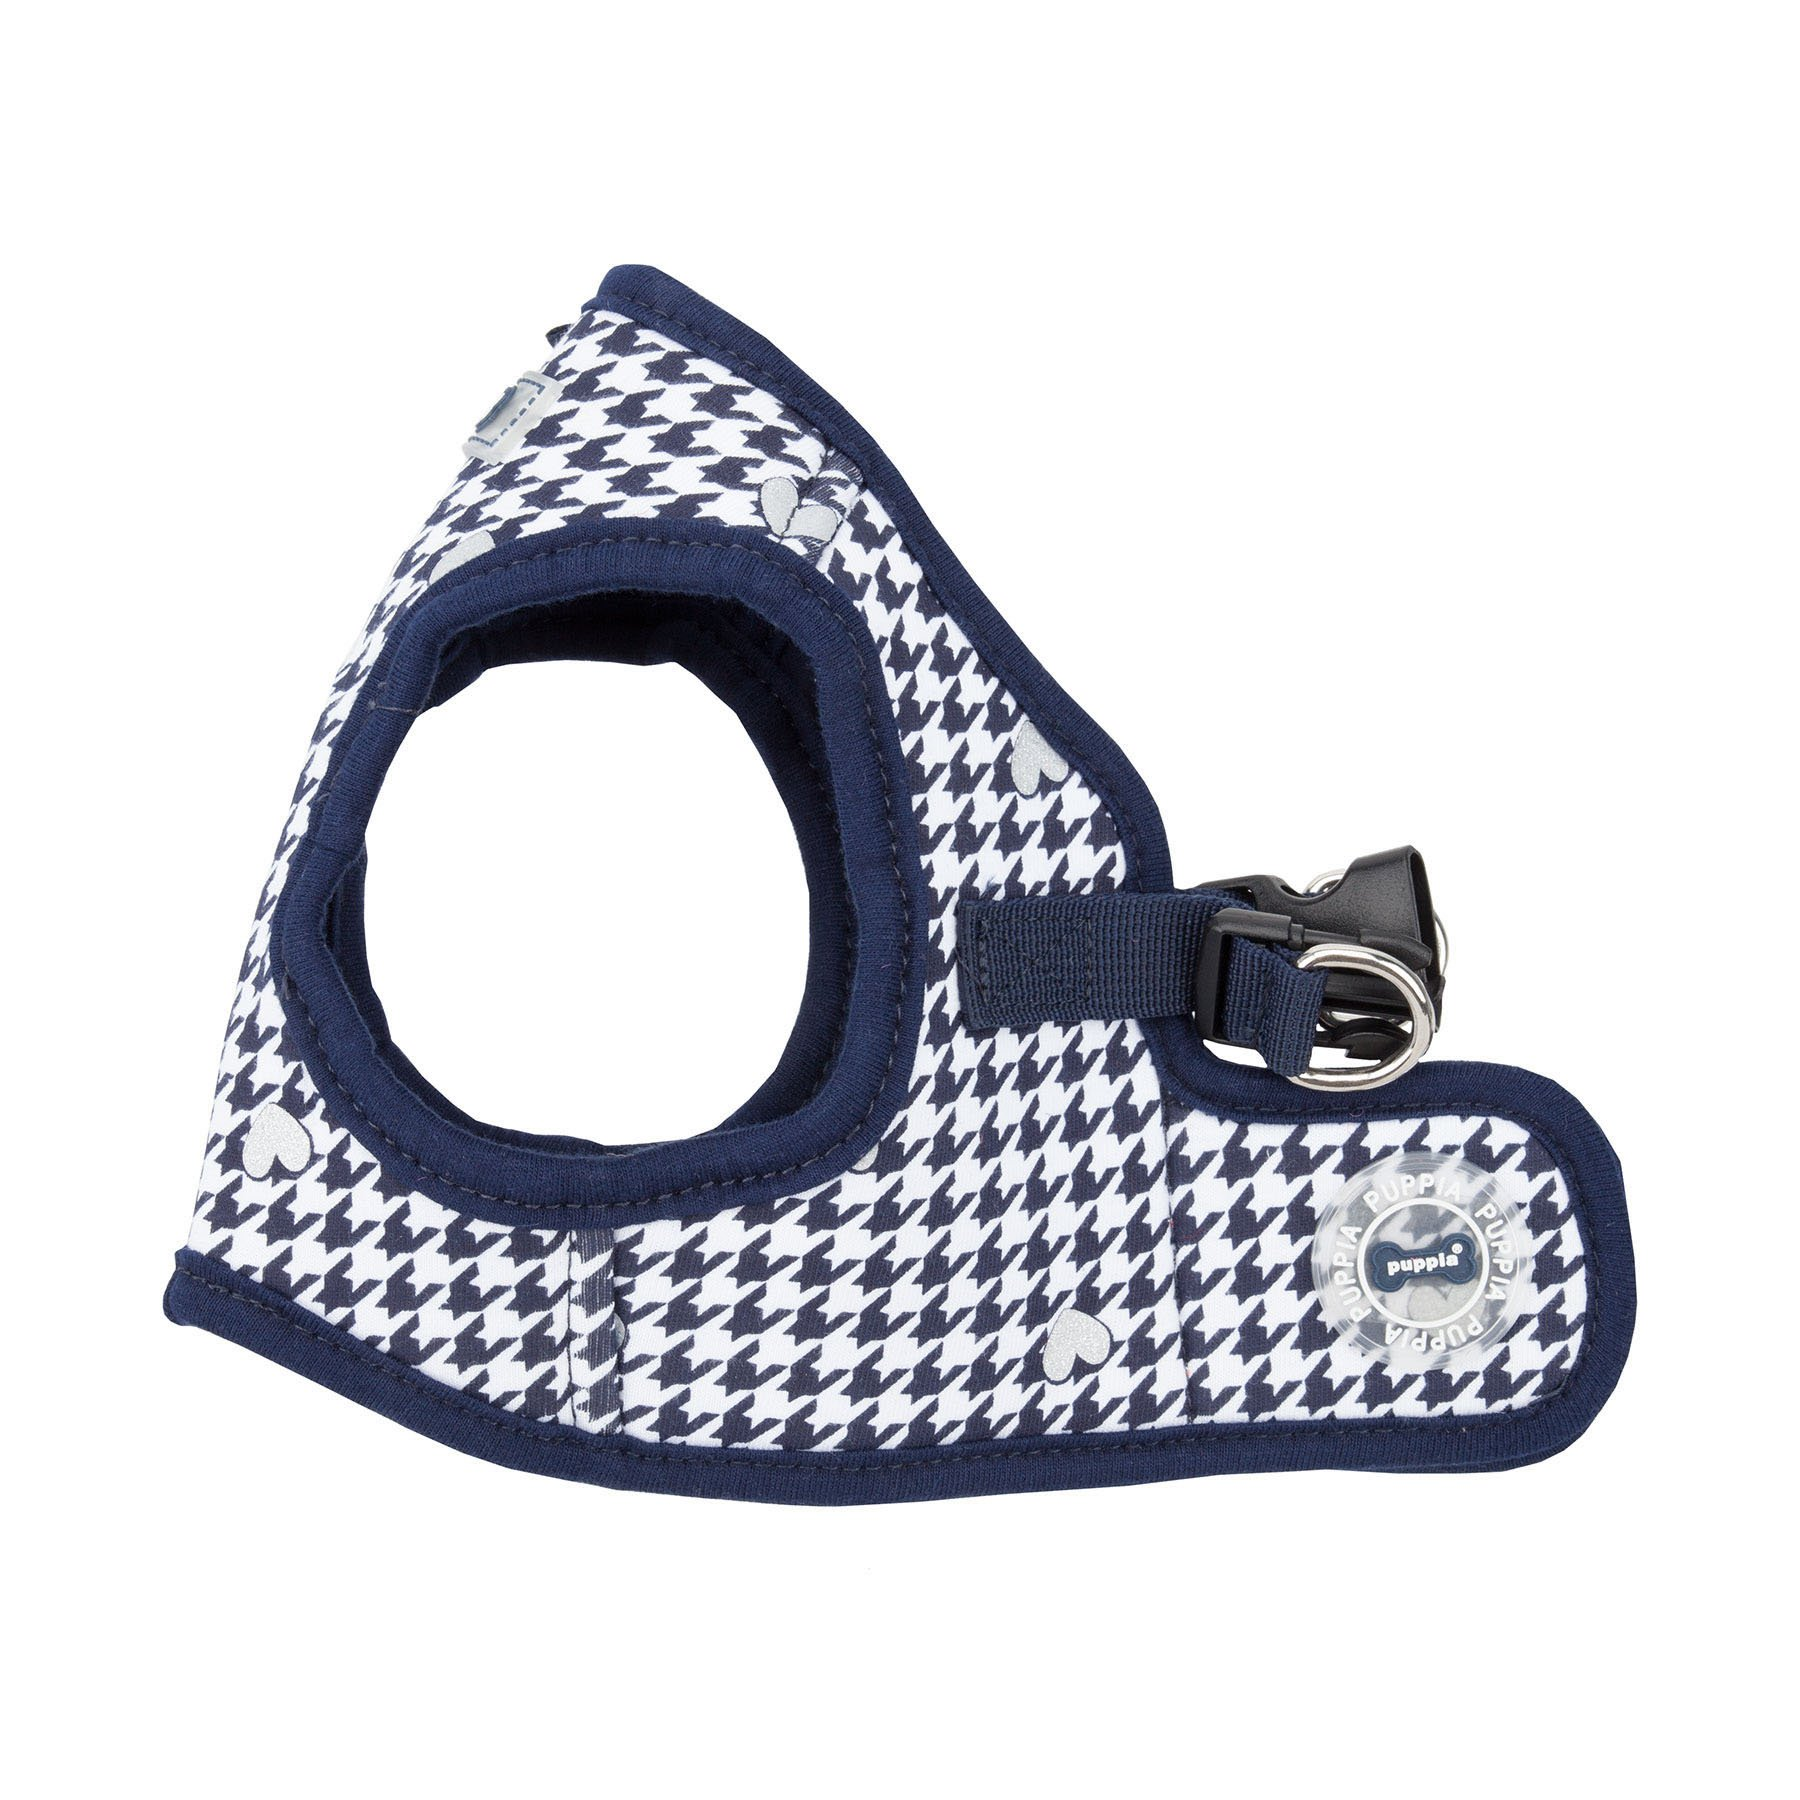 Puppia Authentic Aggie Harness B, Medium, Navy by Puppia